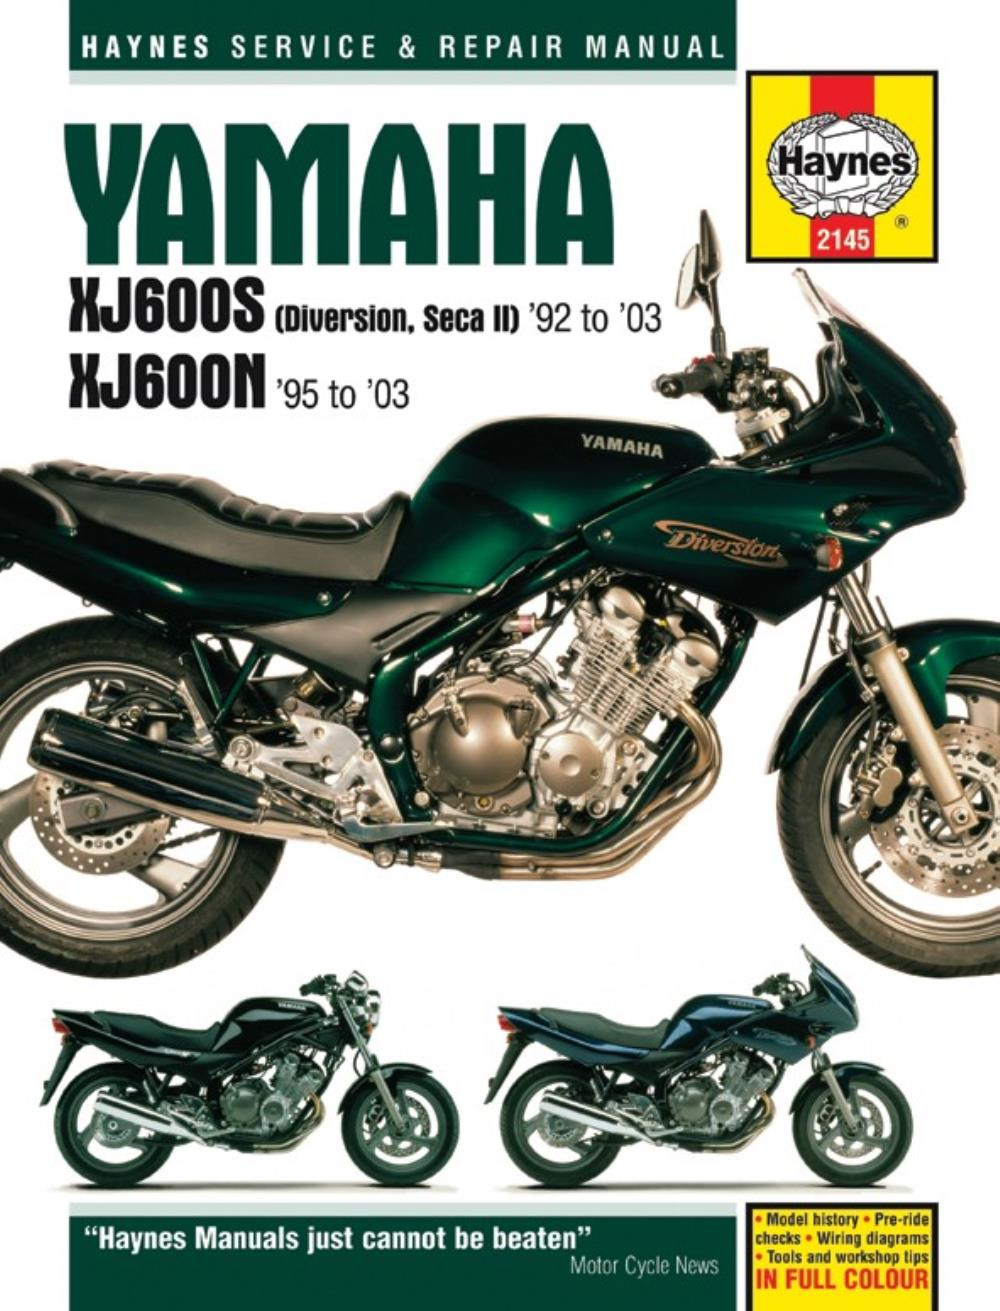 Yamaha xj 600 sh diversion 1995 haynes service repair manual 2145 ebay workshop manual yamaha xj600n xj600 diversion 1992 2003 asfbconference2016 Gallery